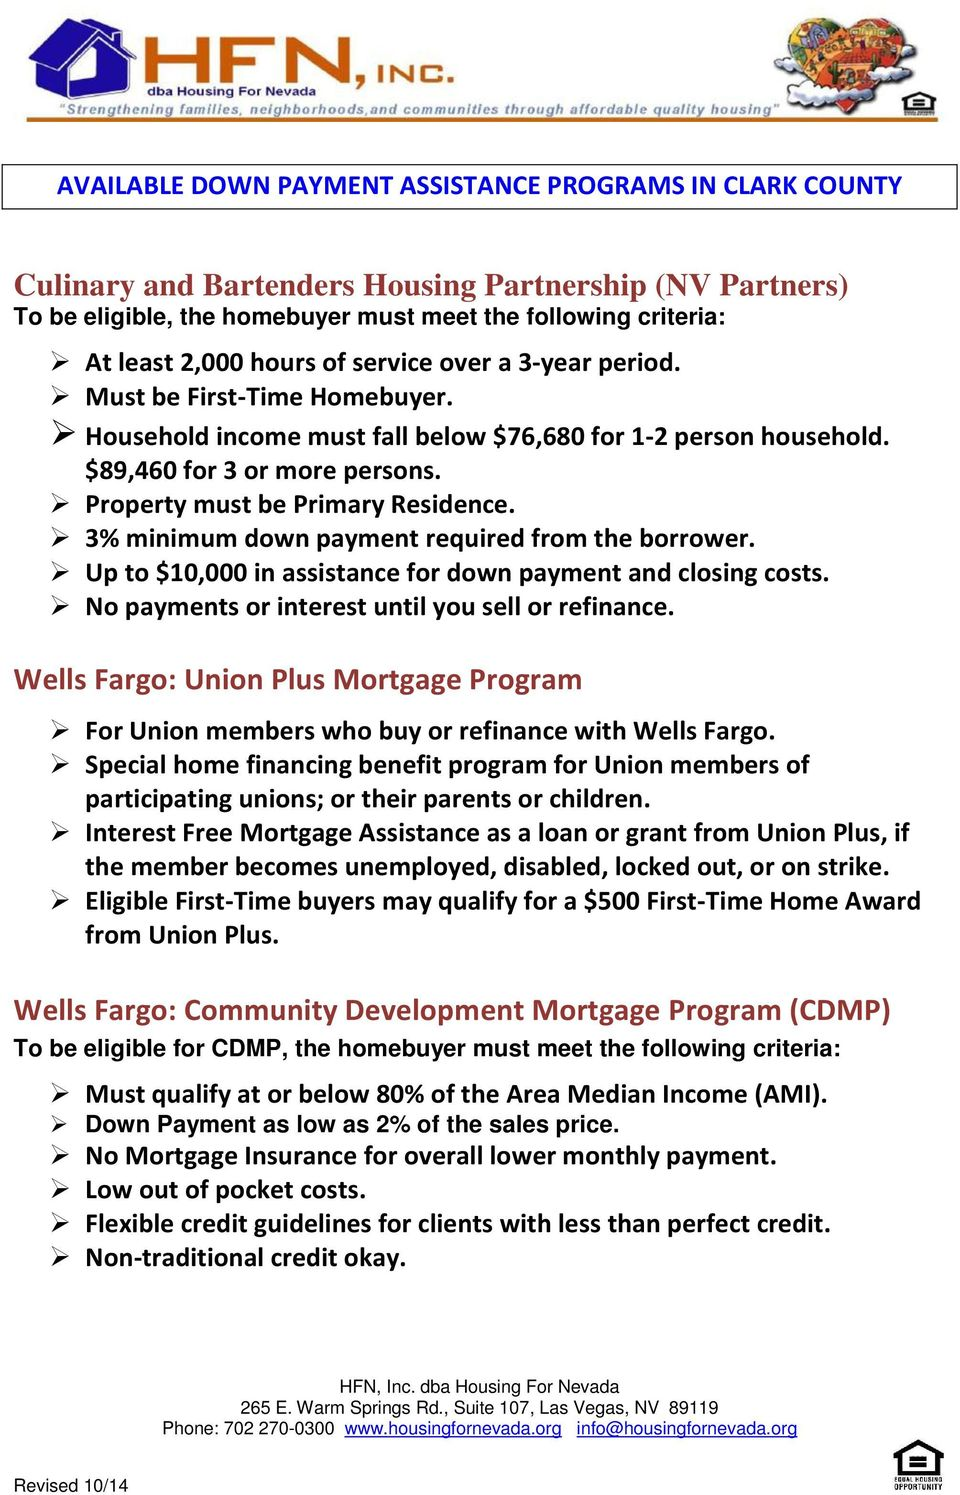 Up to $10,000 in assistance for down payment and closing costs. No payments or interest until you sell or refinance.